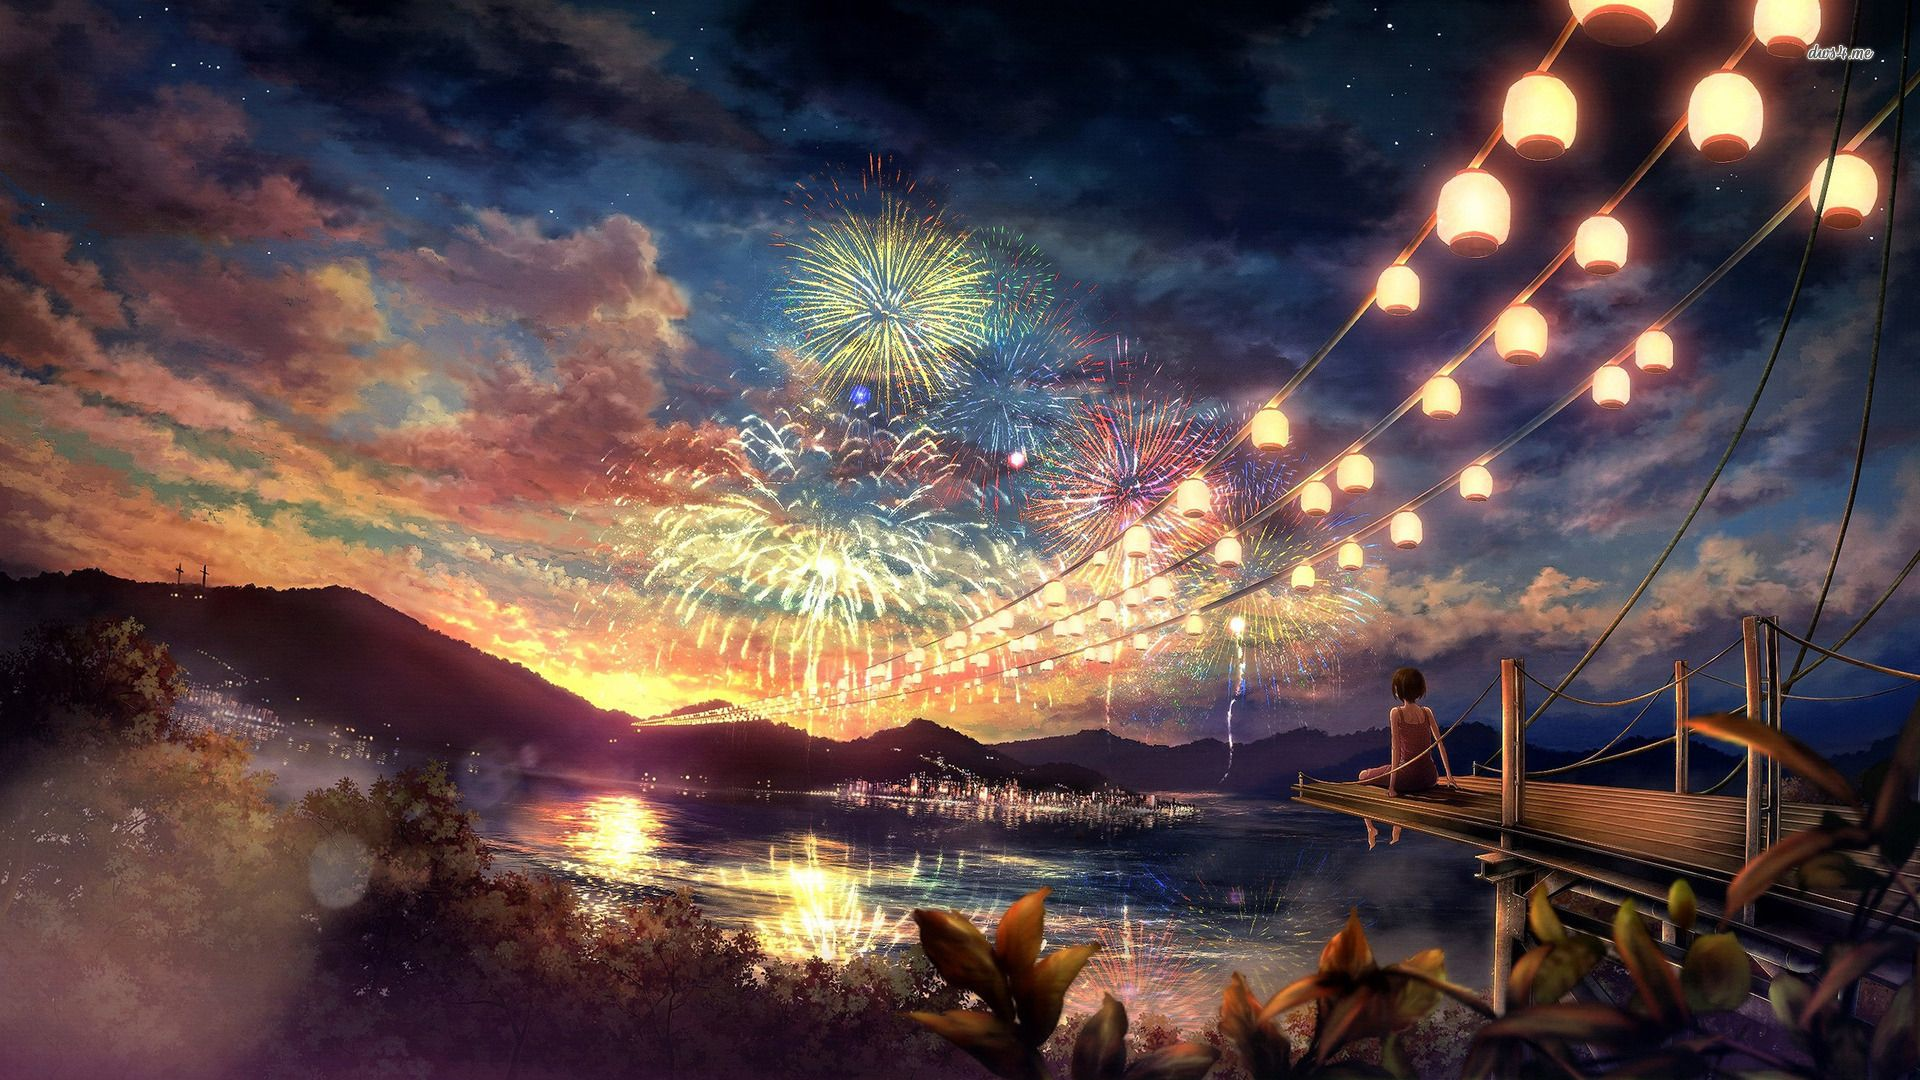 Girl watching the fireworks wallpaper - Anime wallpapers ...